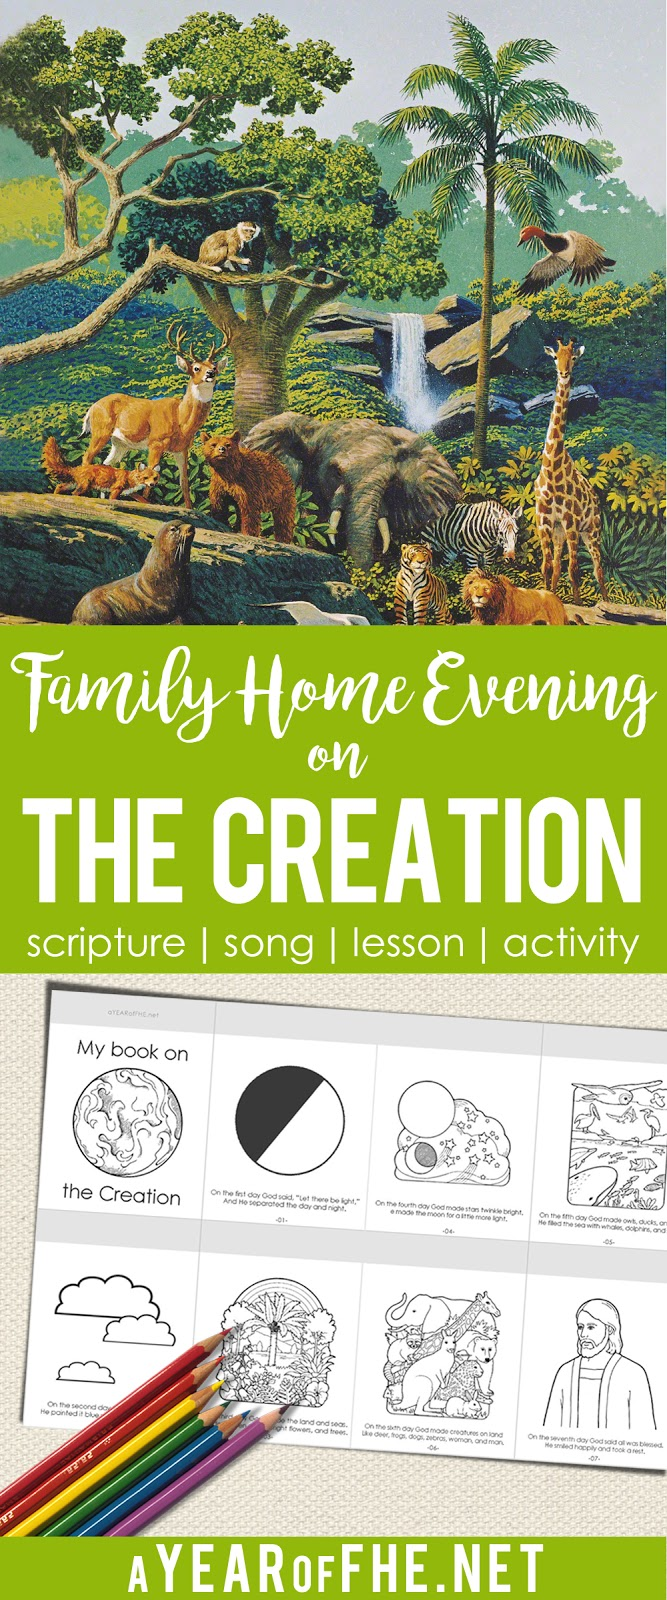 A Year of FHE // This Family Home Evening lesson is great for little ones and comes with a cute, little, flip book on The Creation for kids to color! #fhe #creation #lds